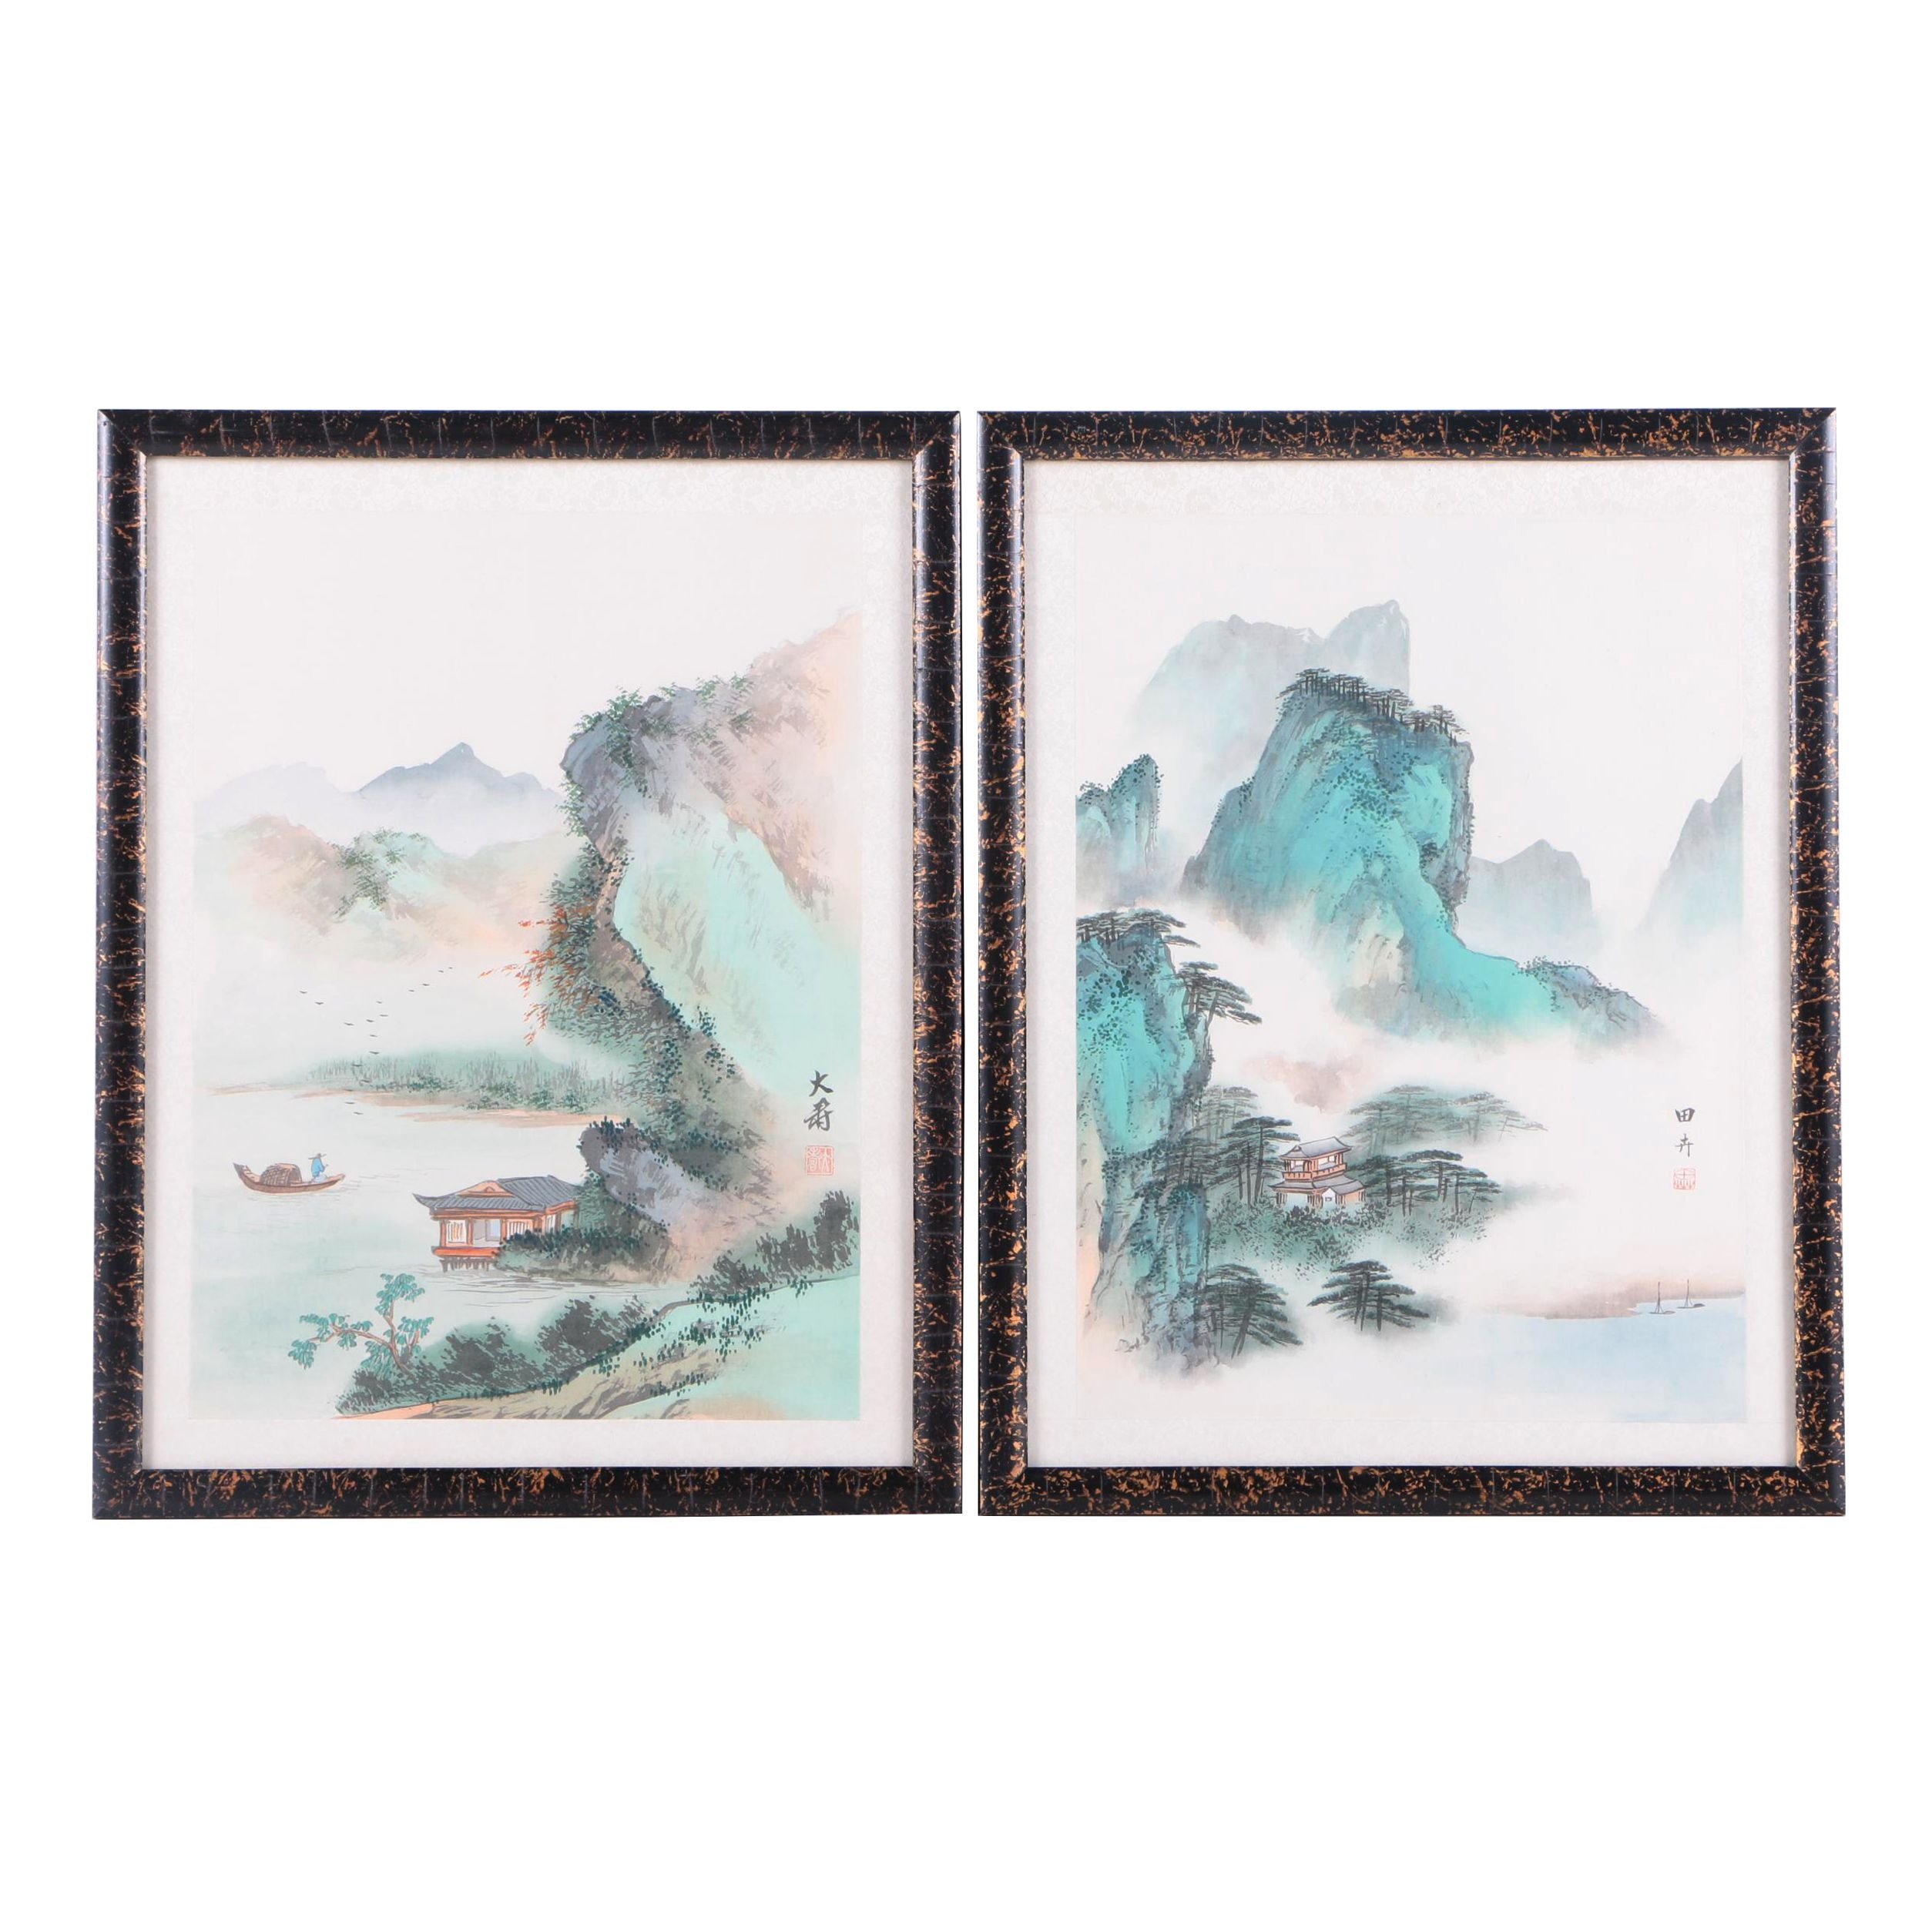 East Asian Style Watercolor Paintings on Silk of Landscapes